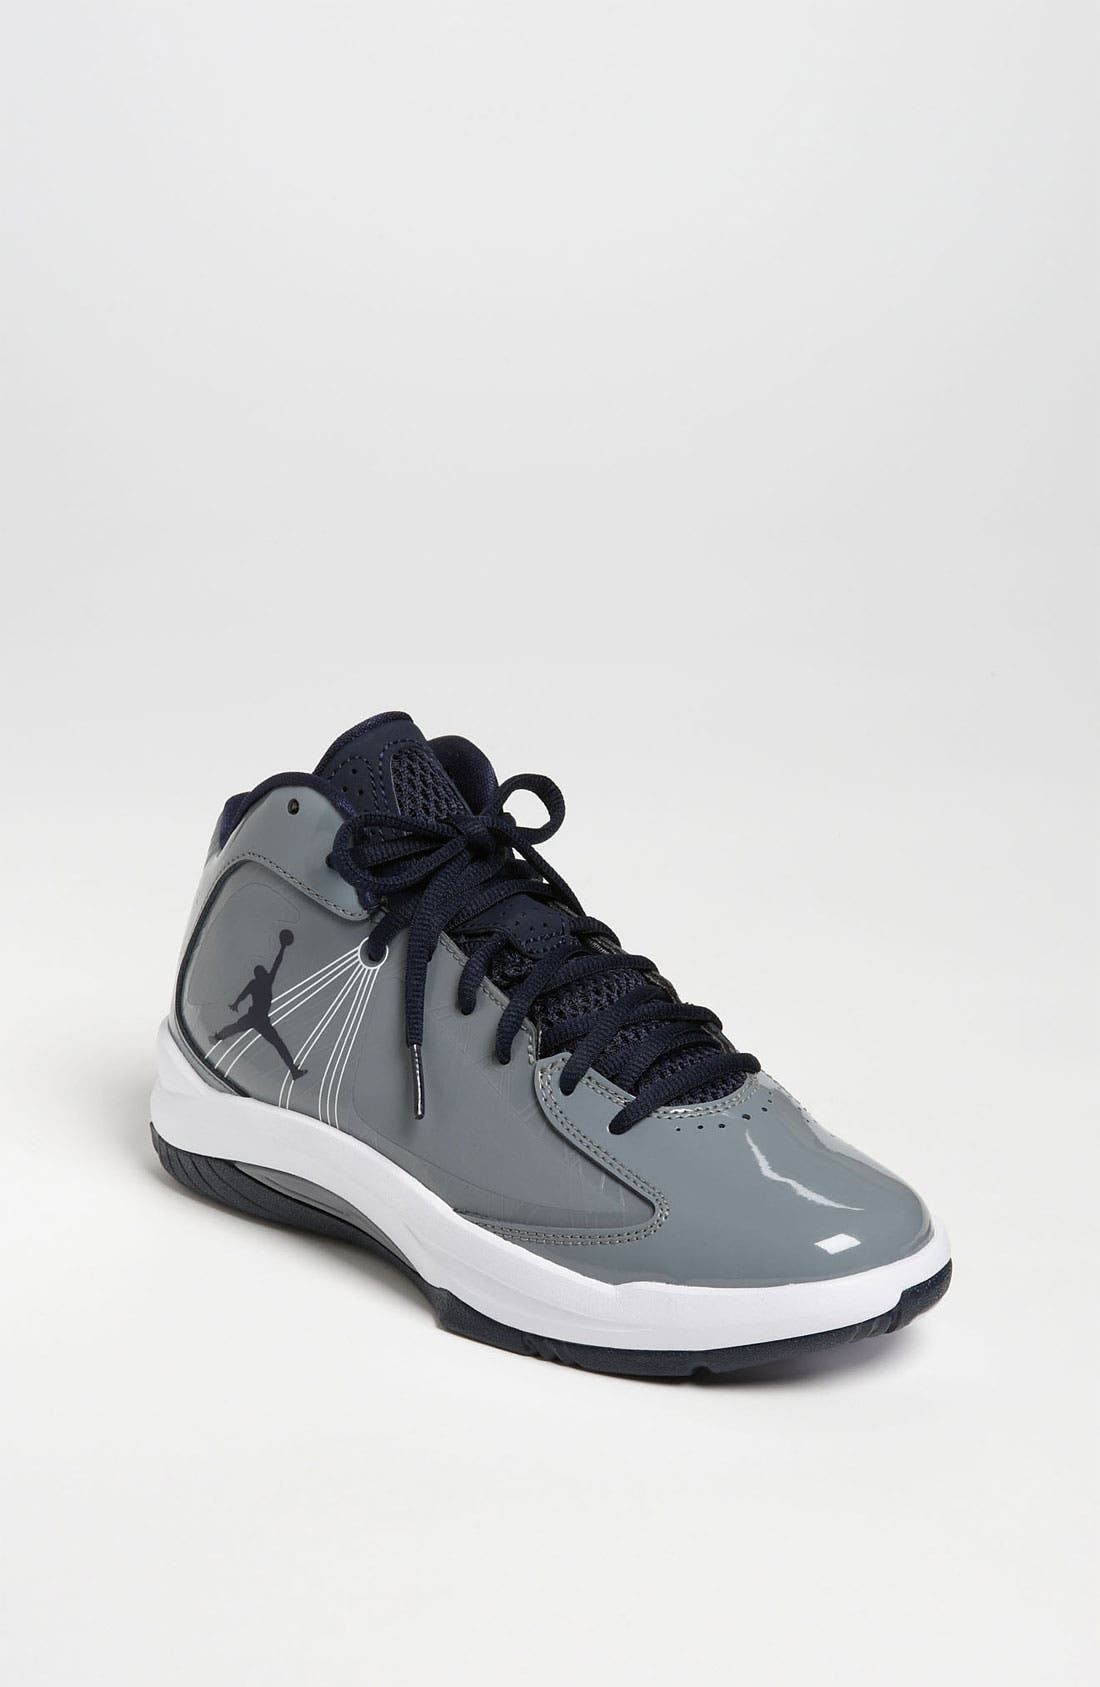 Main Image - Nike 'Jordan Aero Flight' Sneaker (Big Kid)